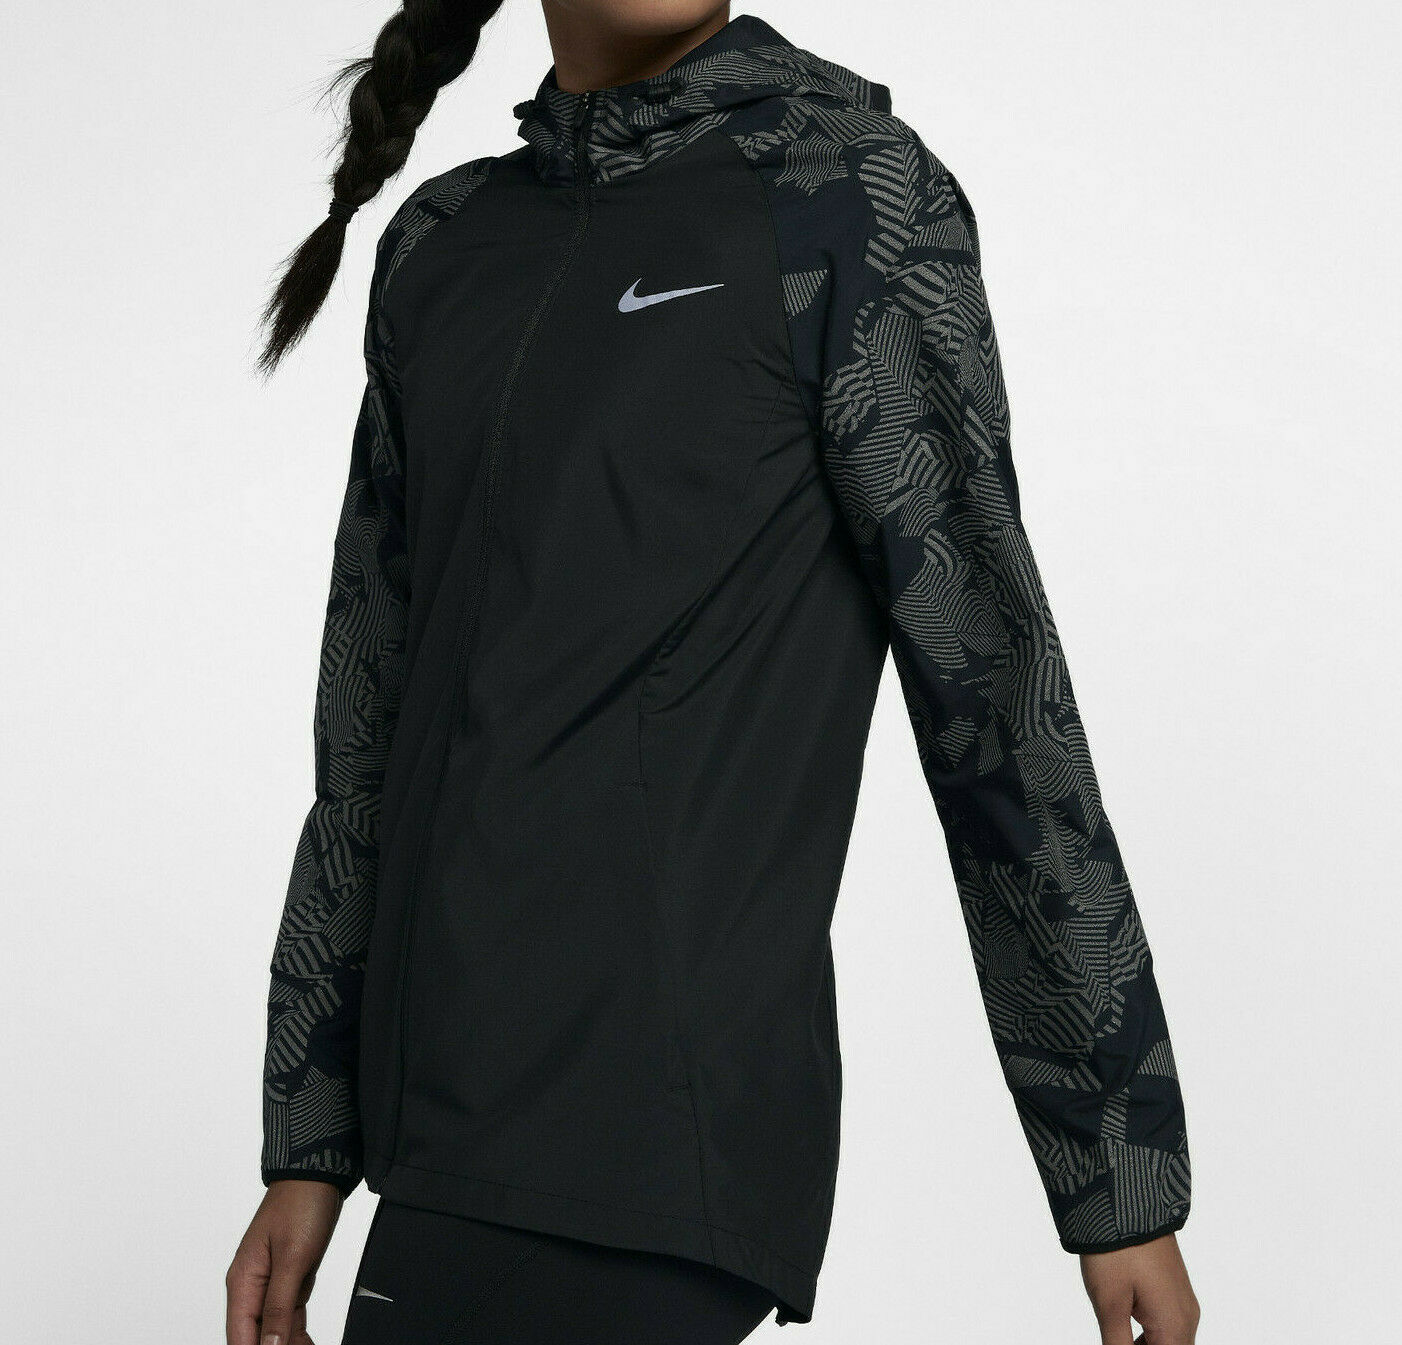 Nike HyperShield Flash Men's Running Jacket hologram light